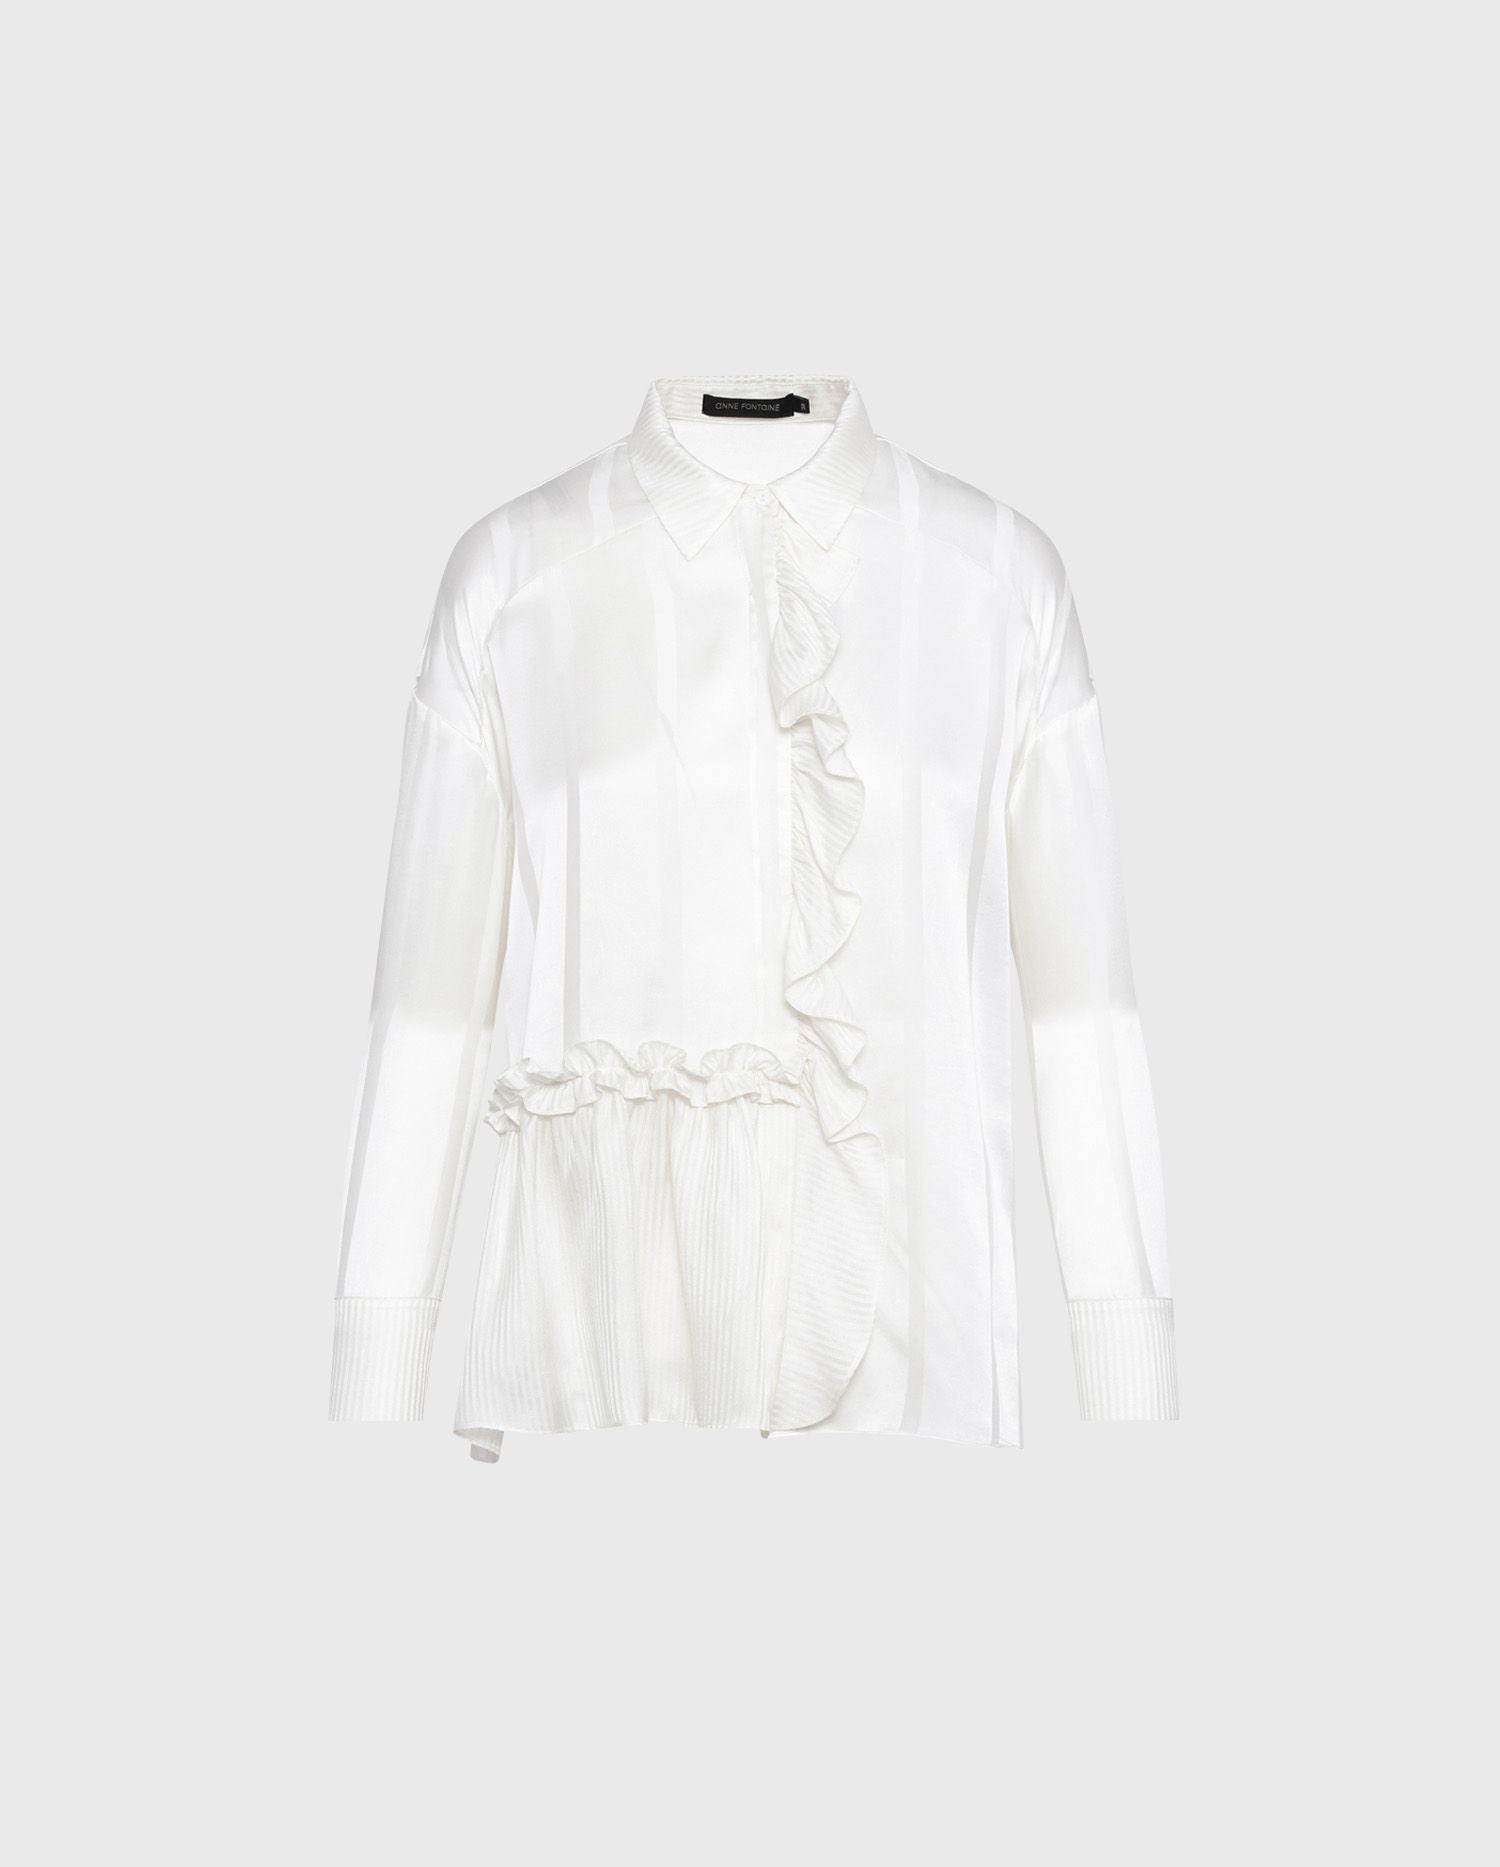 Slip to into the cream color silk button down shirt, LOUEVA to add a dose of chic to your wardrobe.